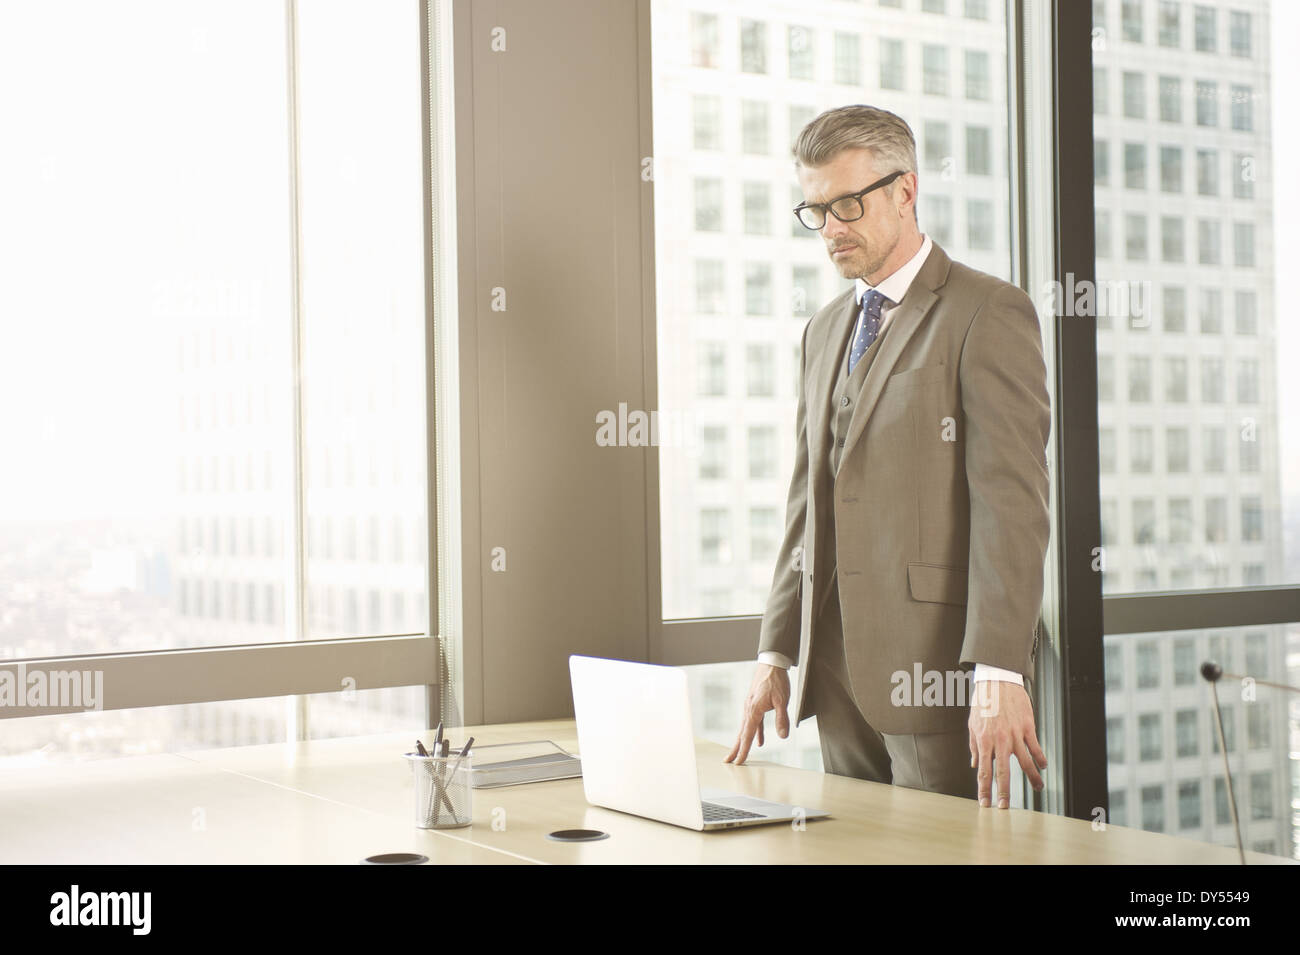 Businessman looking down at laptop on office desk - Stock Image